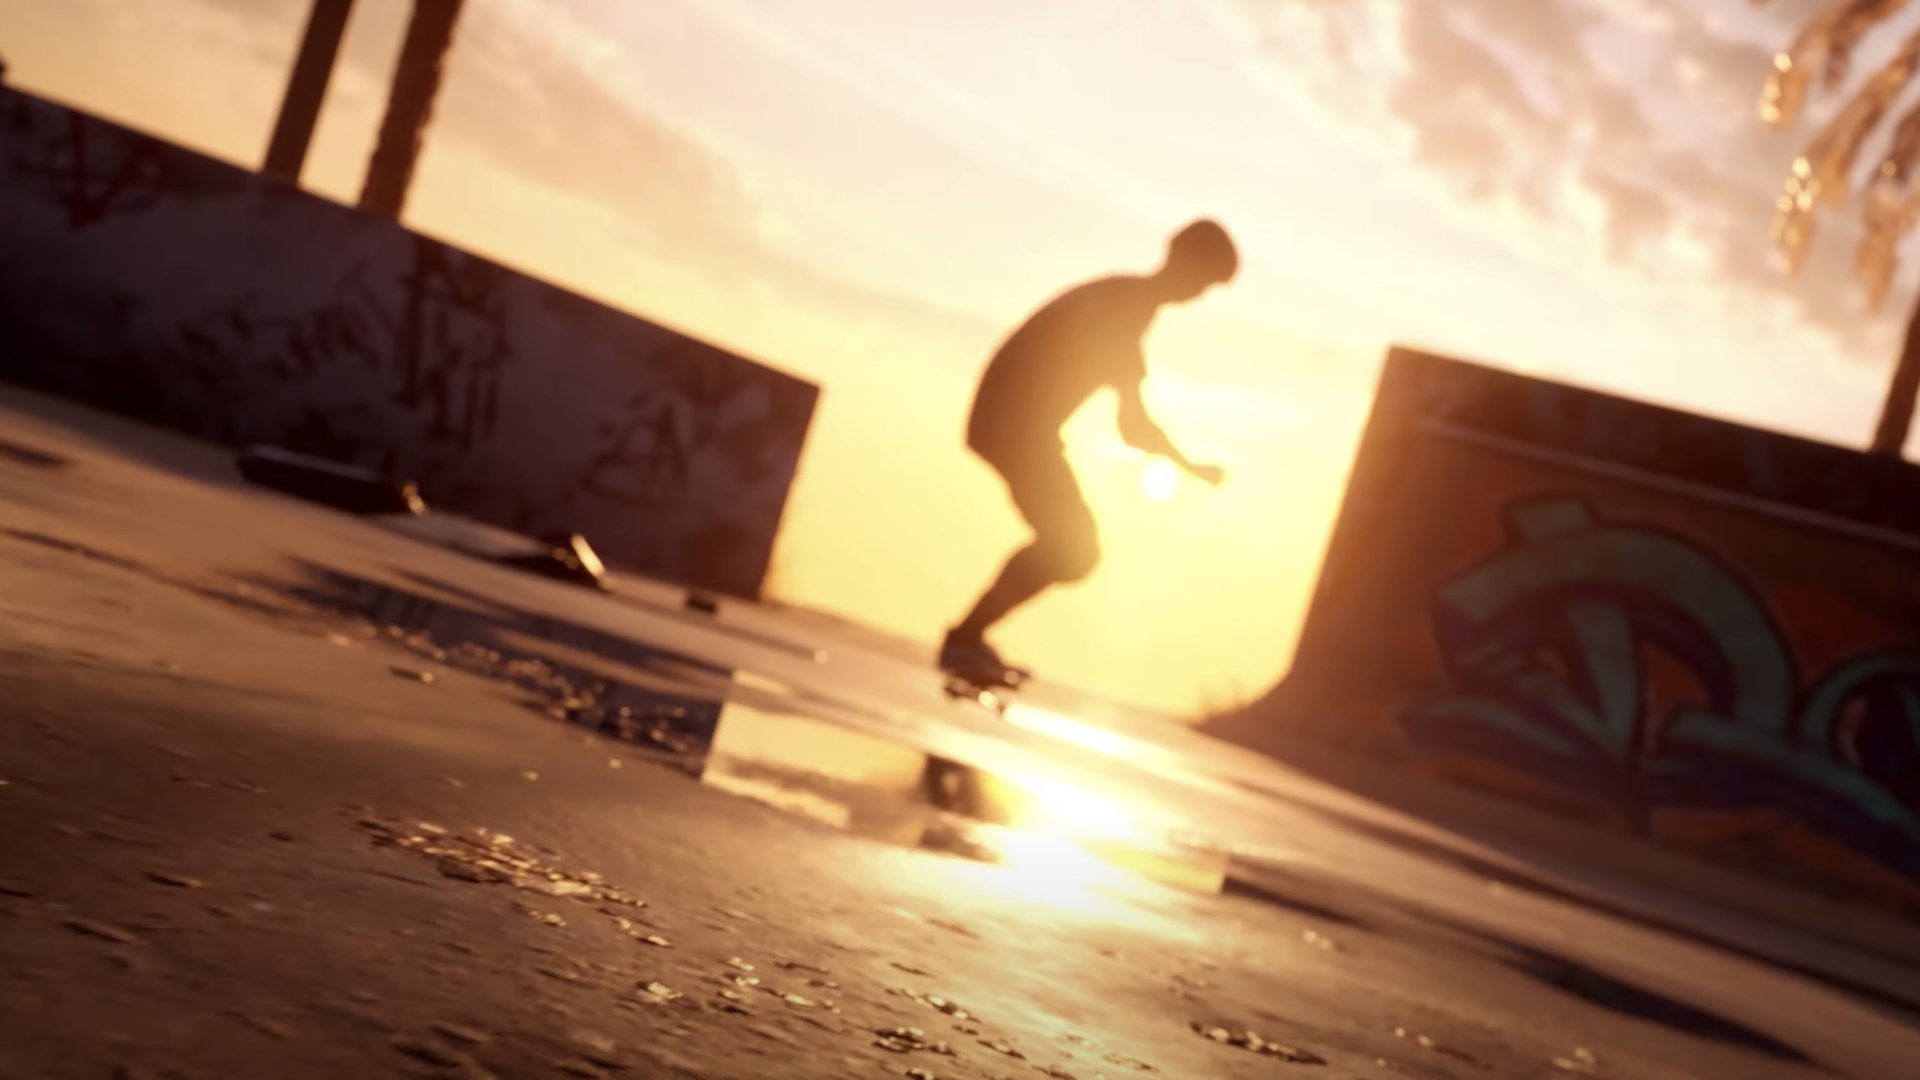 Tony Hawks Pro Skater 1 and 2 Video Goes Behind the Scenes With 1920x1080